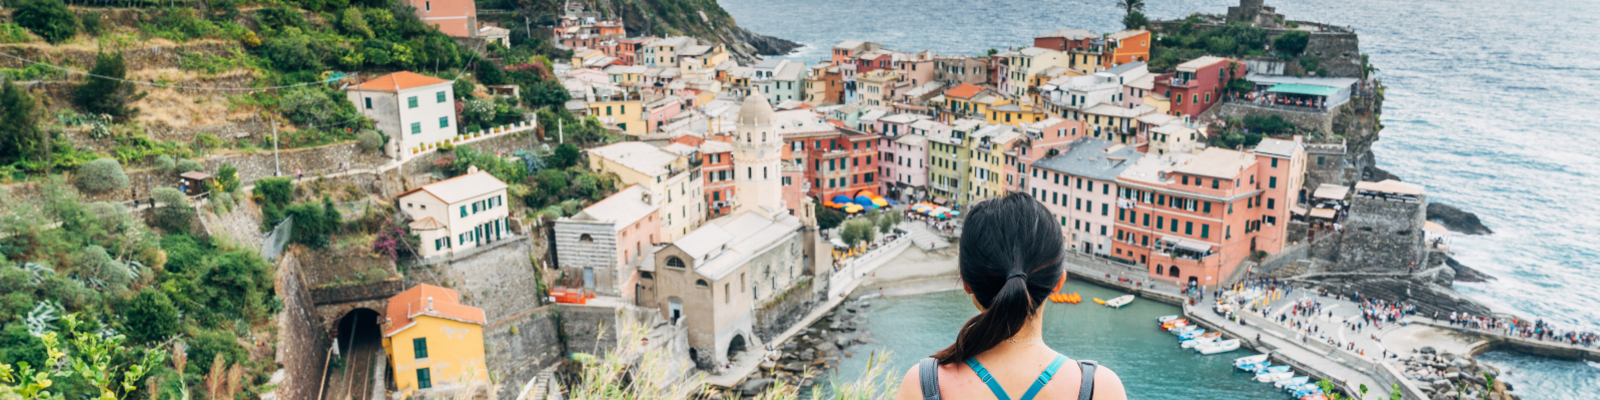 Girl looking out onto the sea and Cinque Terre in Italy. The buildings are colourful